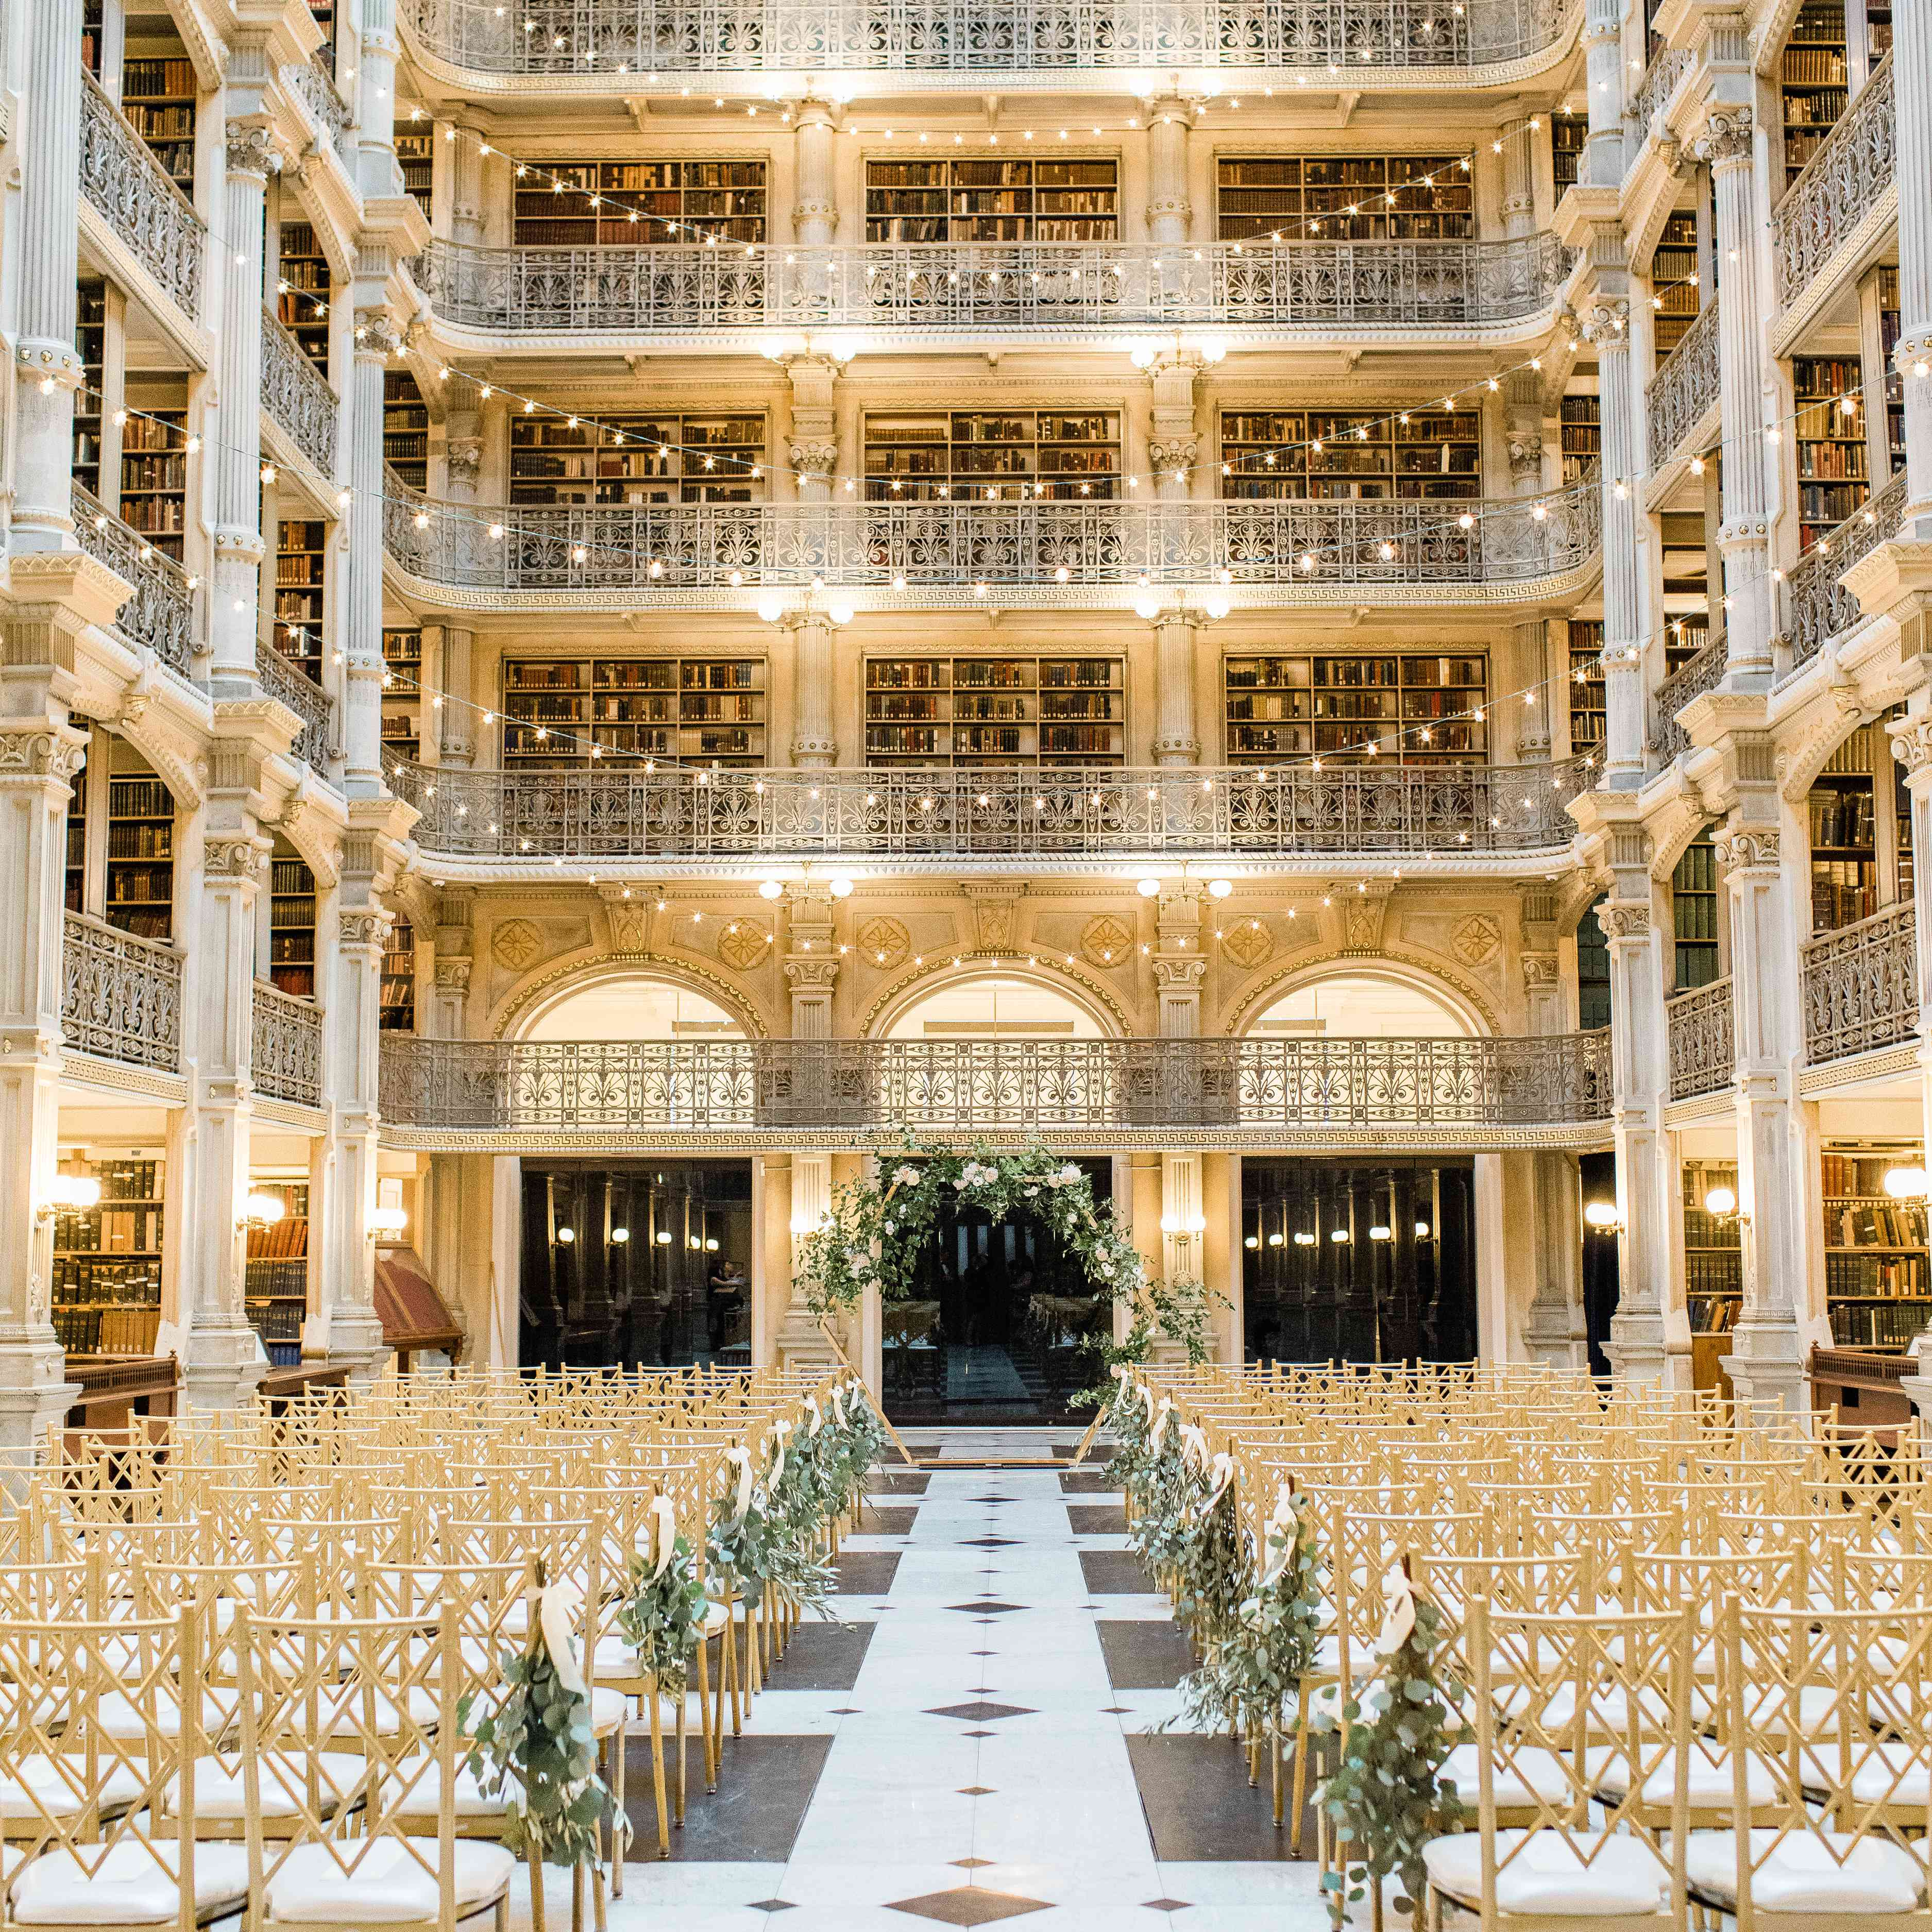 George Peabody Library wedding venue with fairy lights